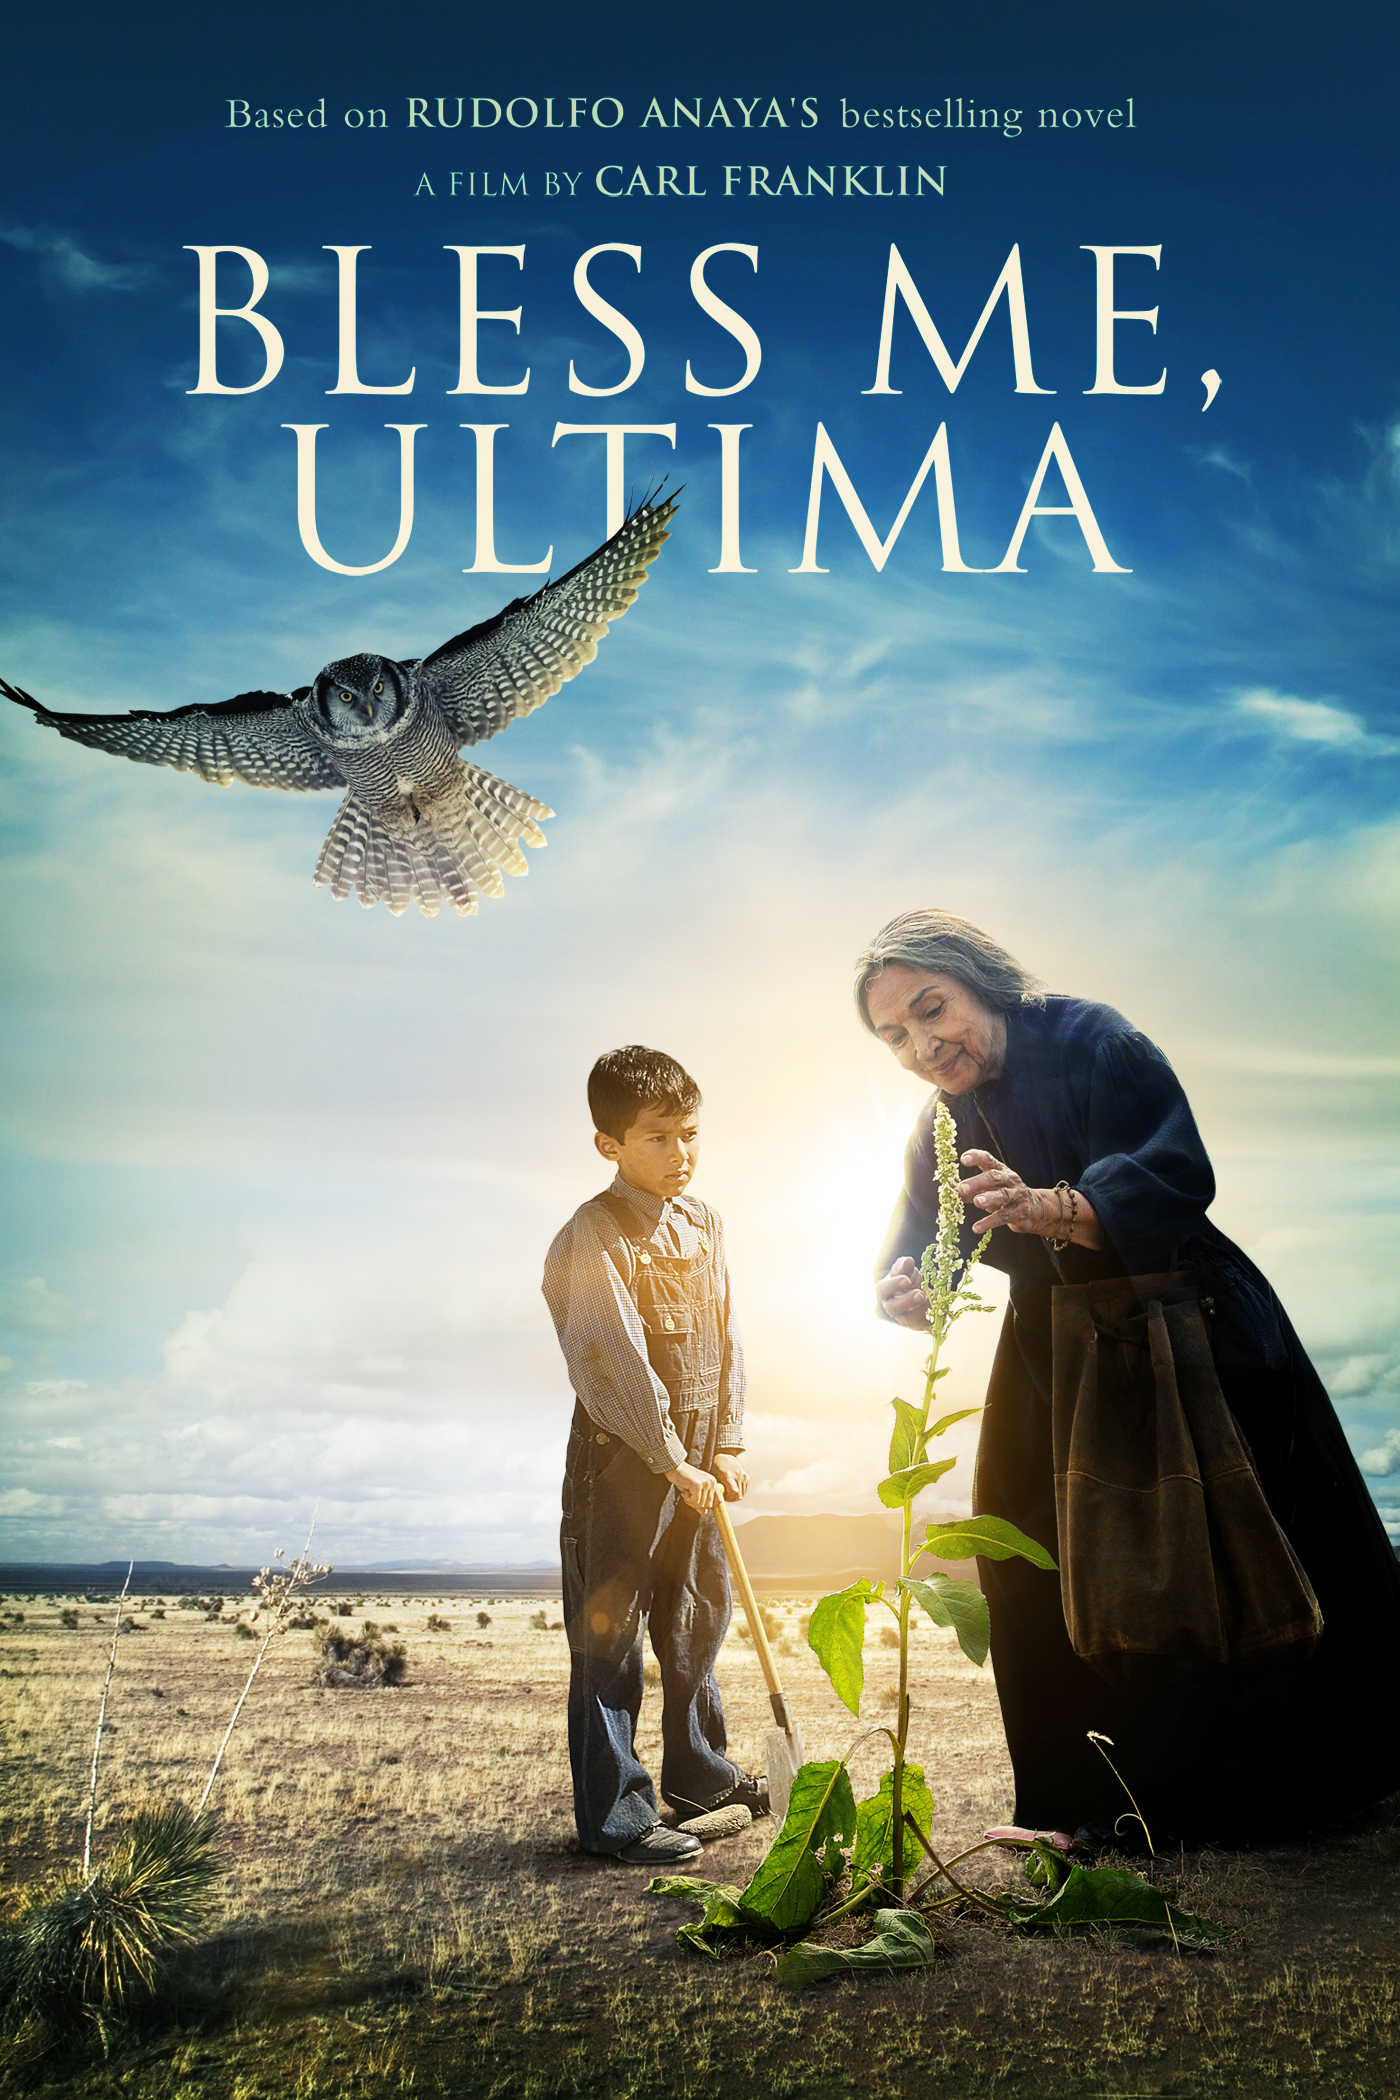 bless me ultima reaction Get everything you need to know about the atomic bomb in bless me, ultima  analysis, related quotes, timeline.